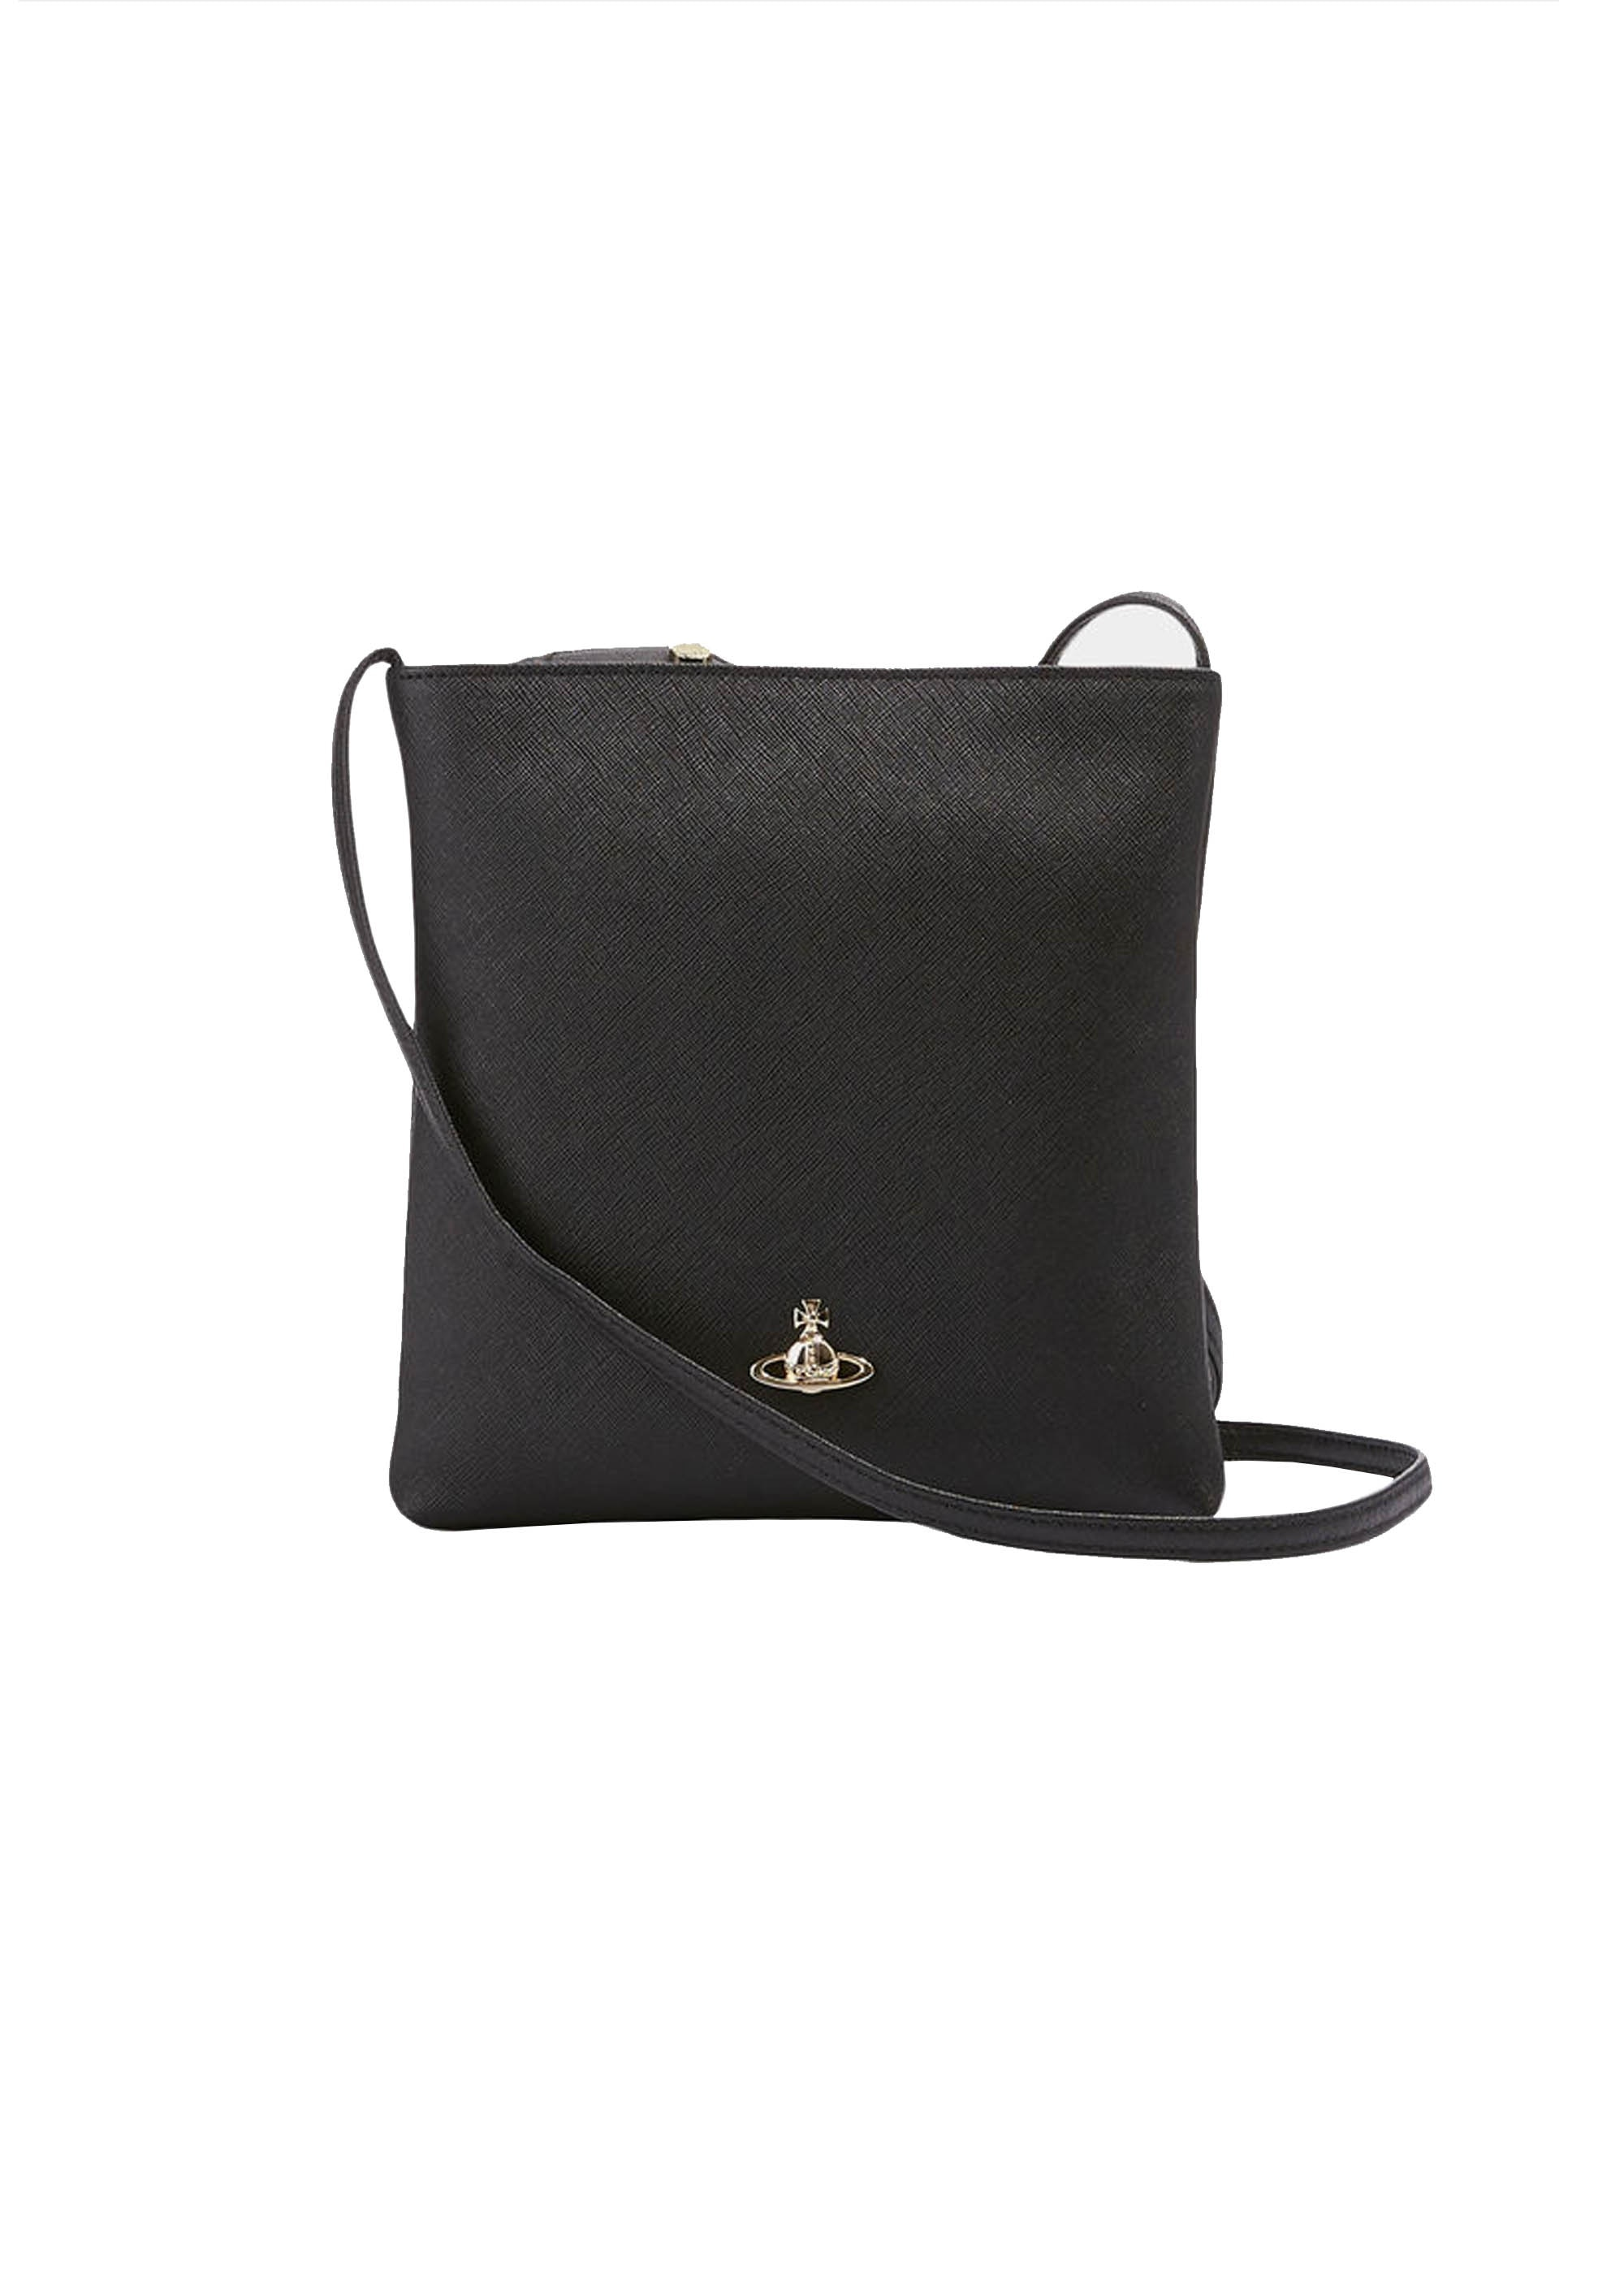 vivienne westwood cross body bag